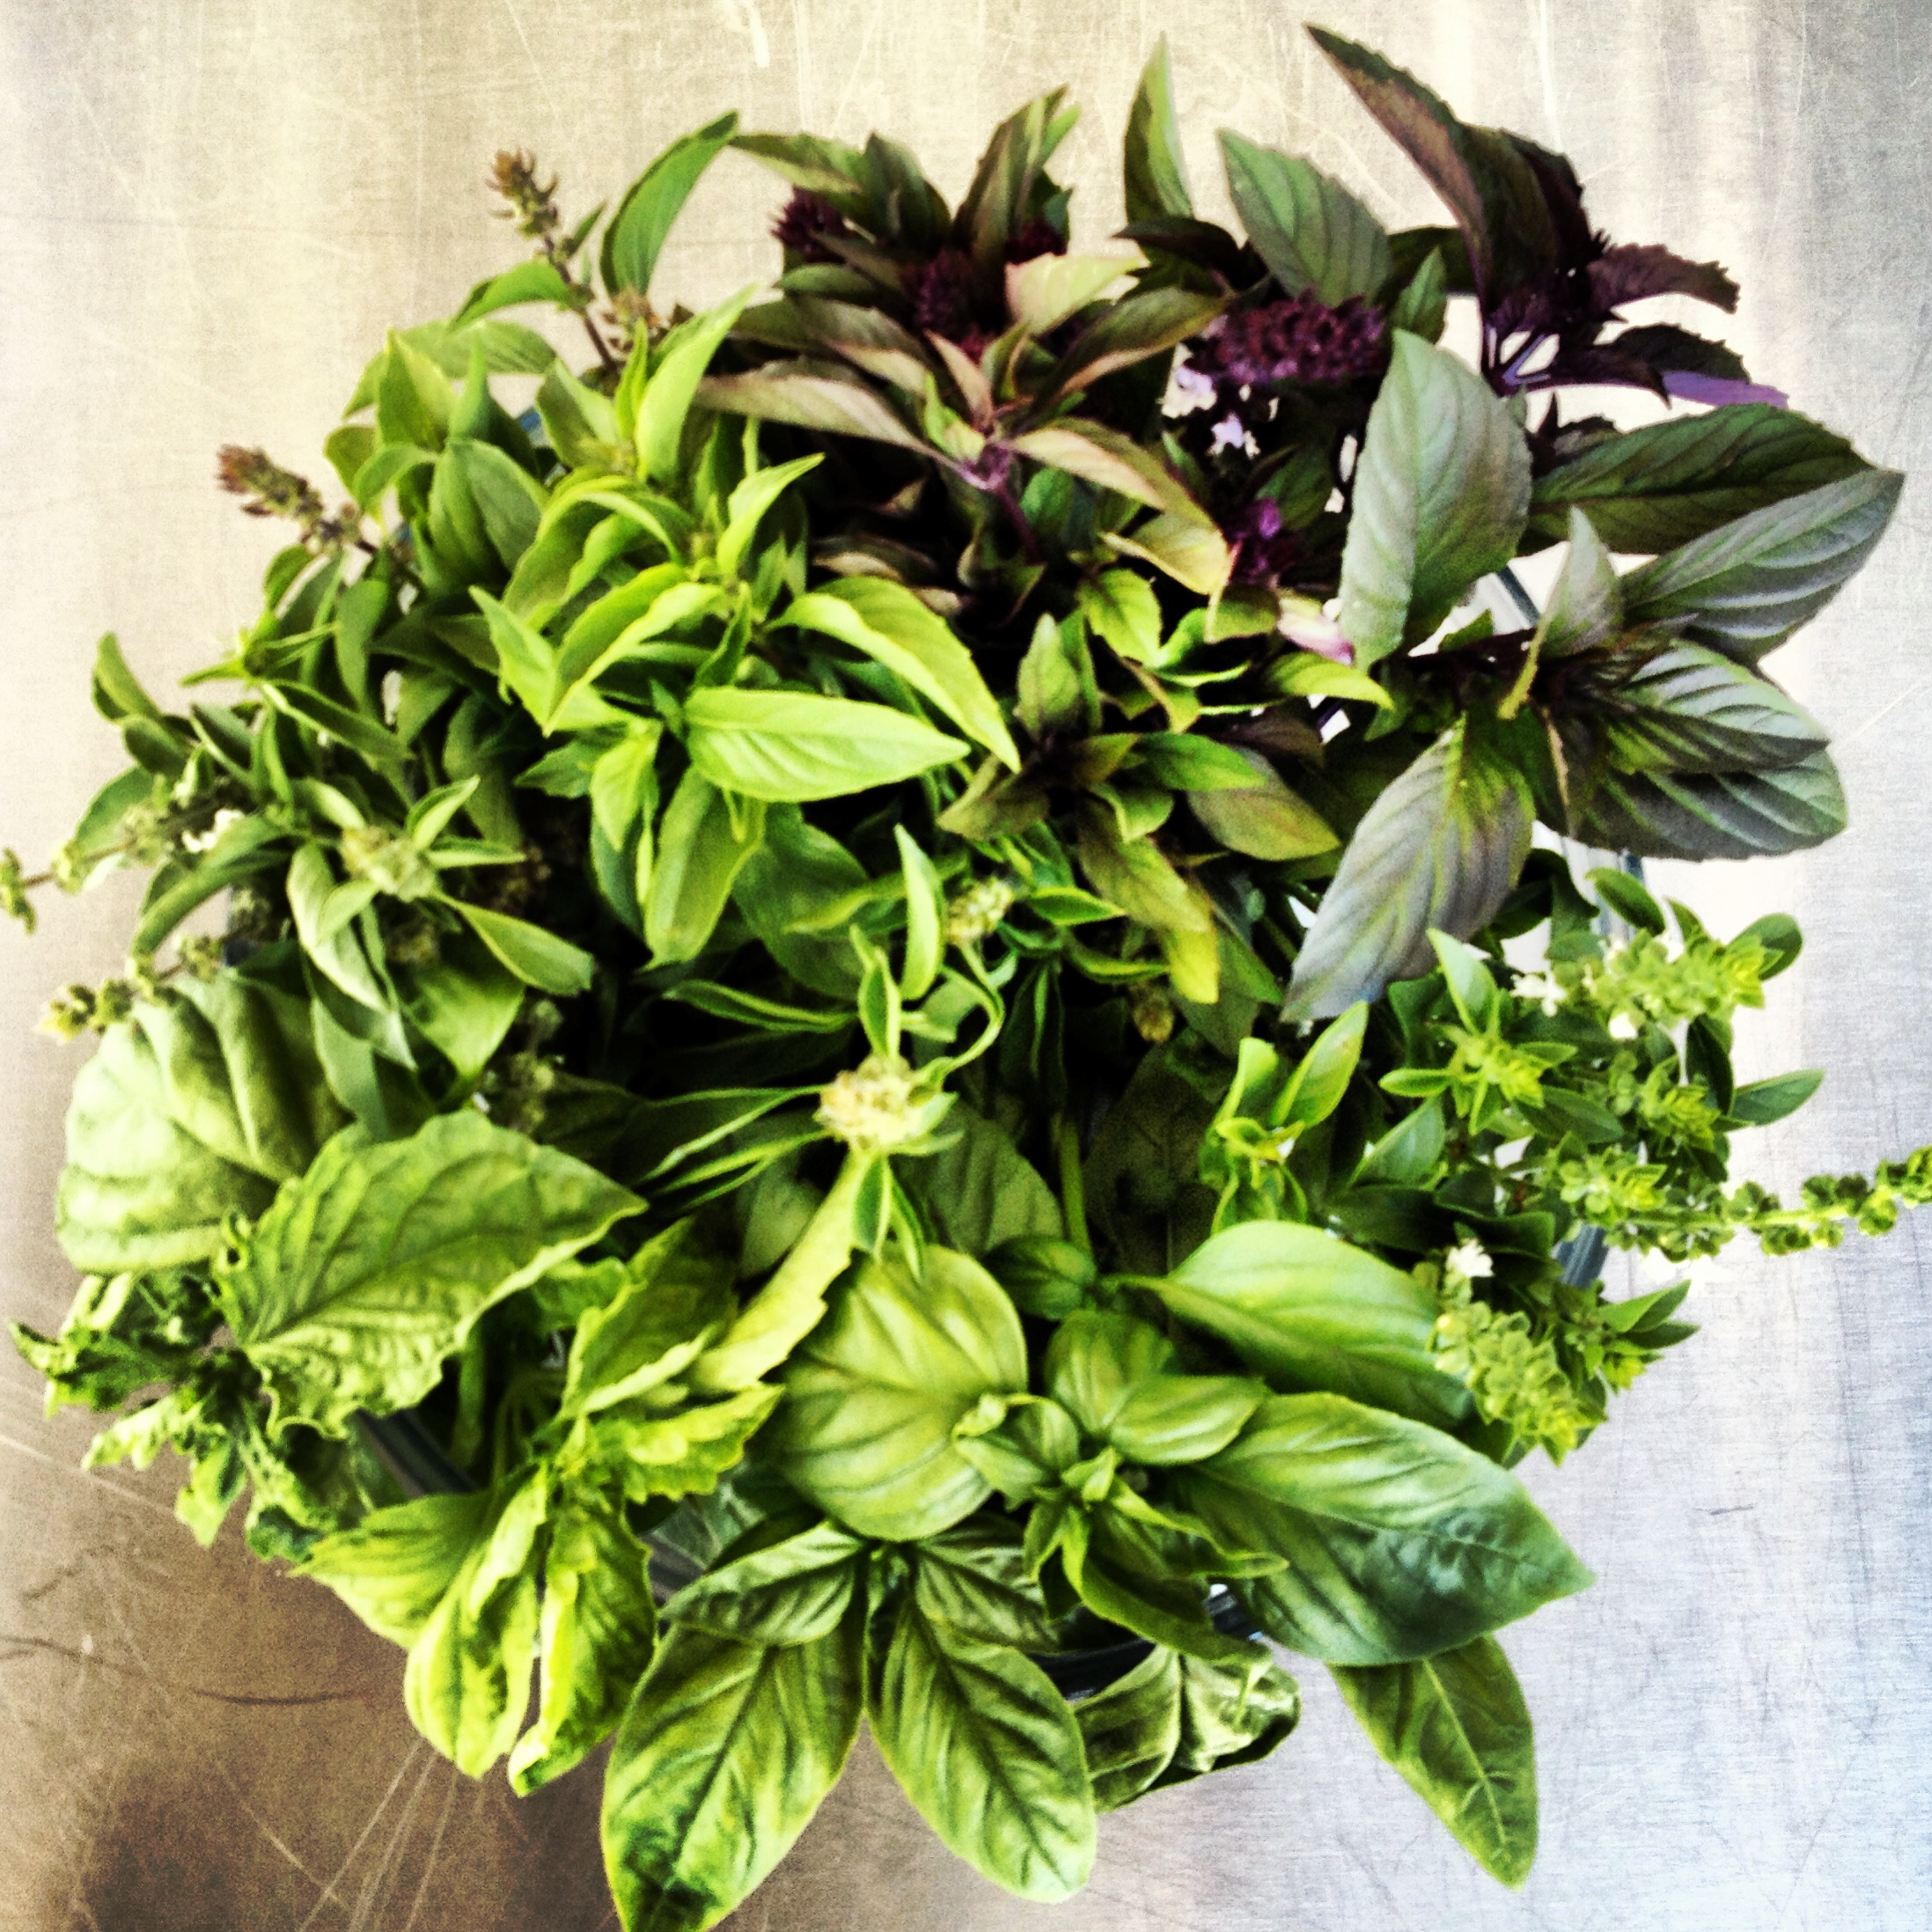 Four types of basil grown right here at the Fullerton Arboretum accompained tonight's menu!